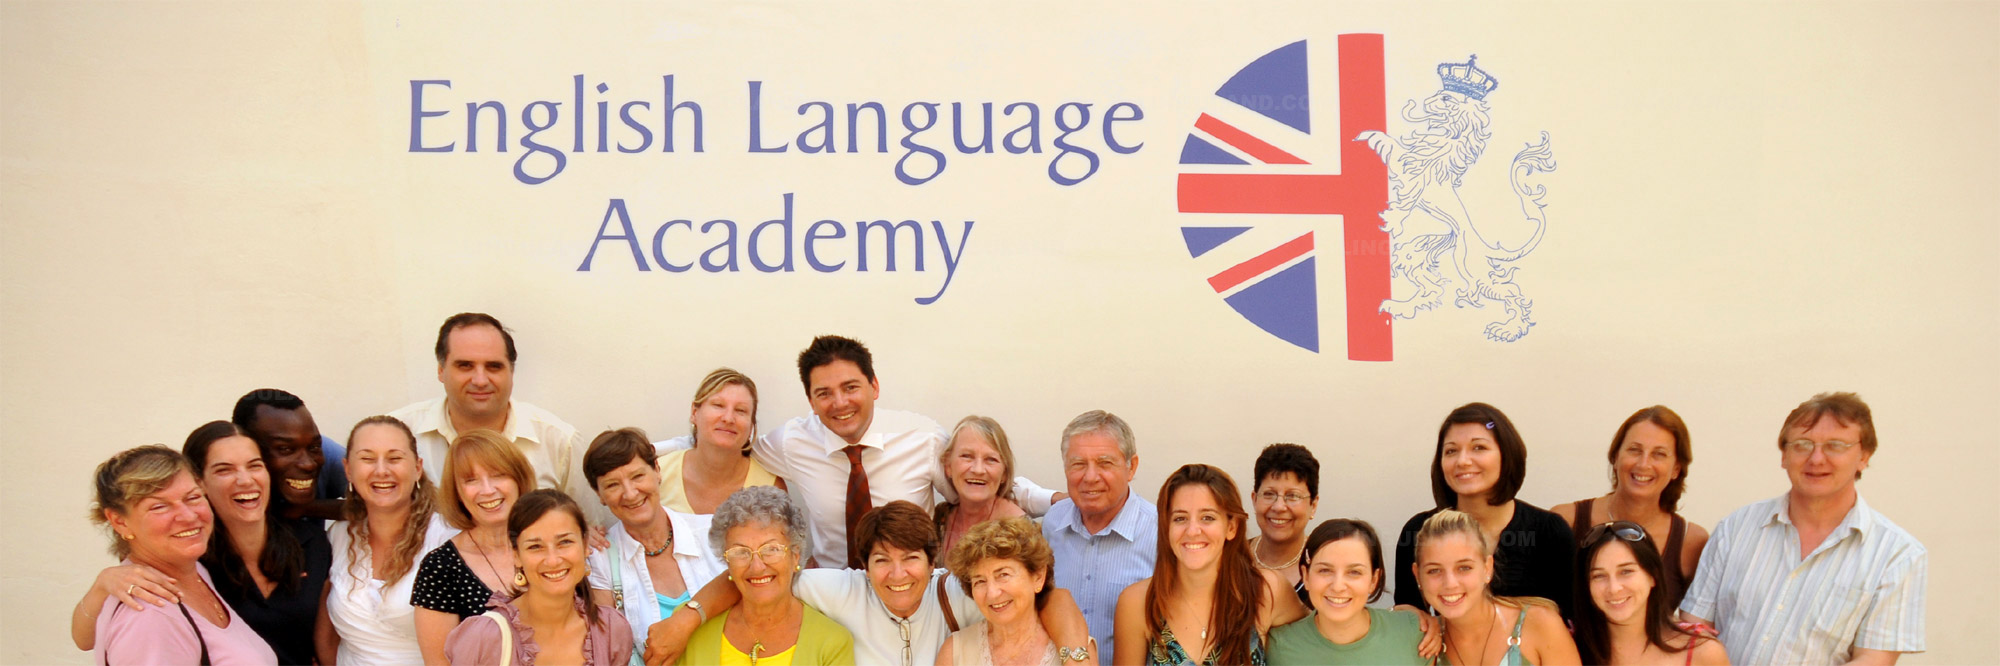 Escuela de inglés English Language Academy